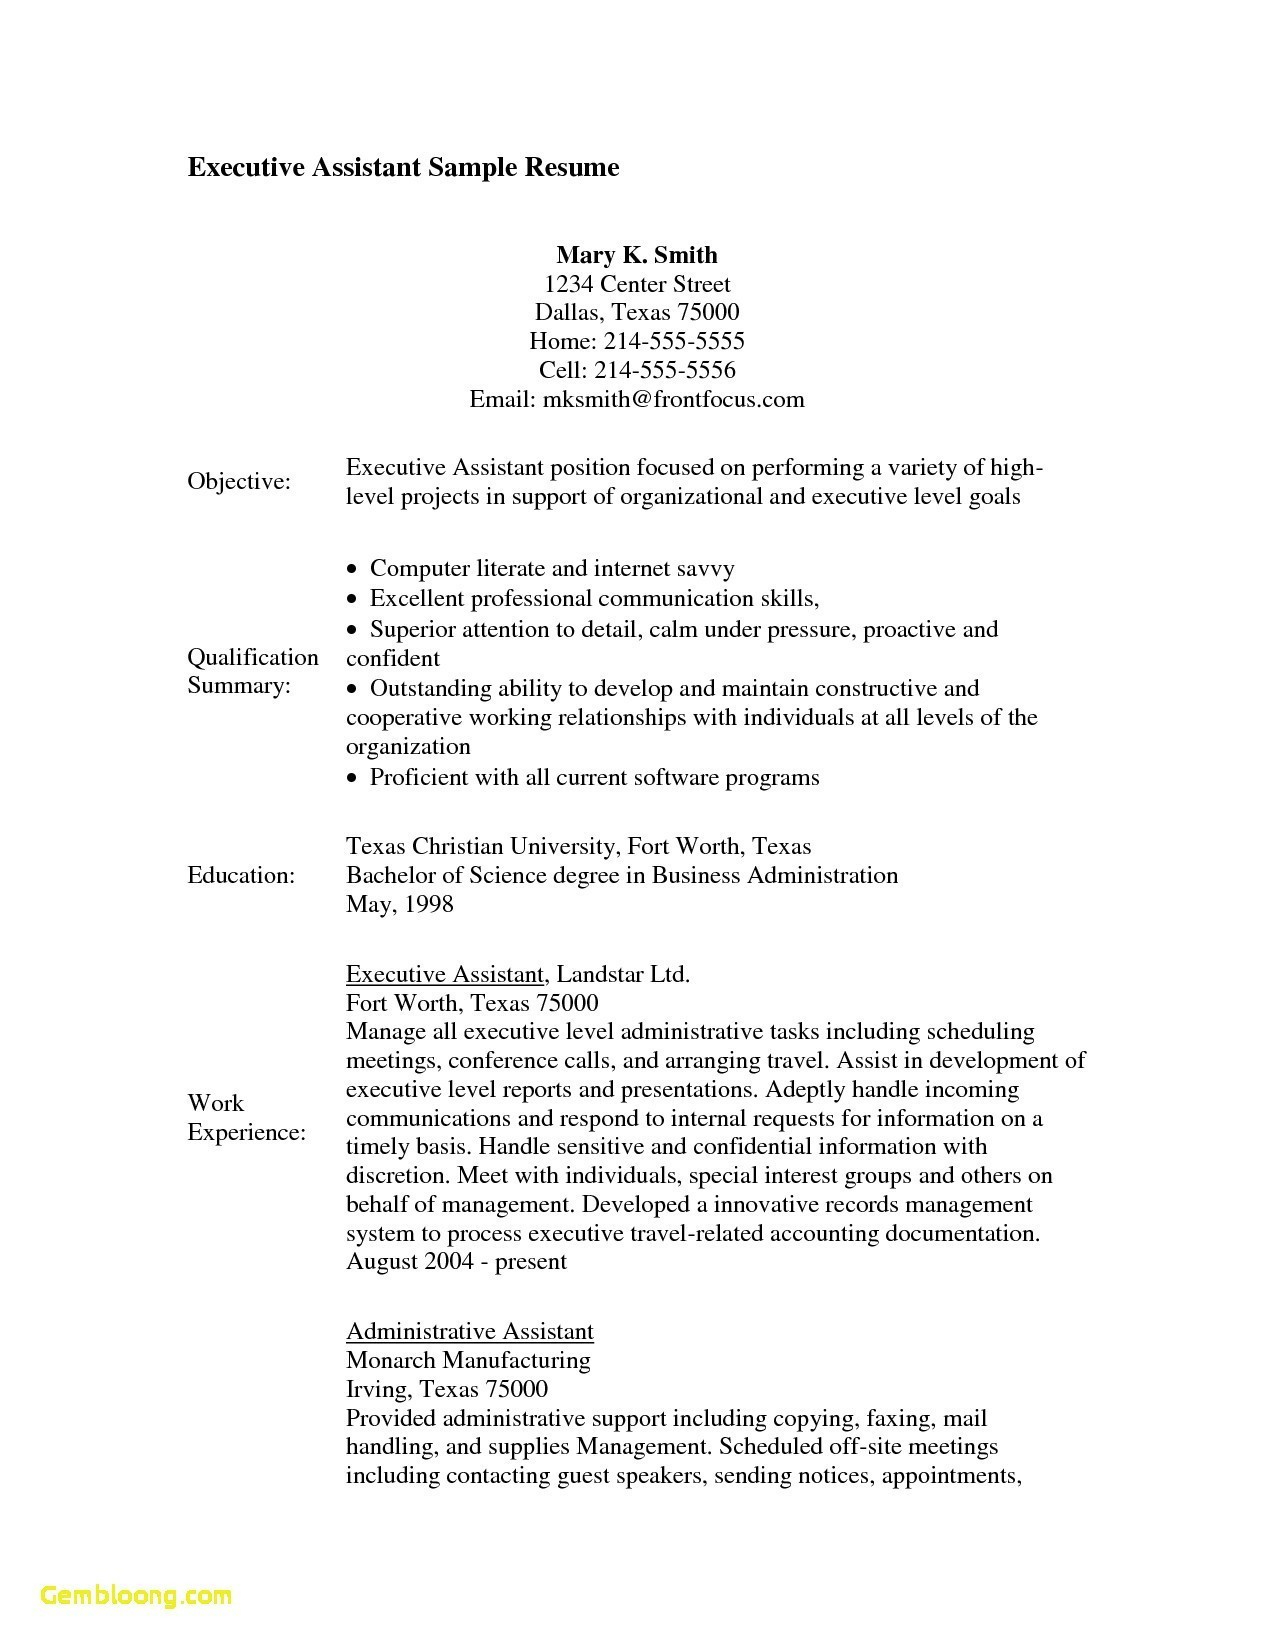 Medical assistant Resume Template Free - Medical assistant Resume New Inspirational Medical assistant Resumes